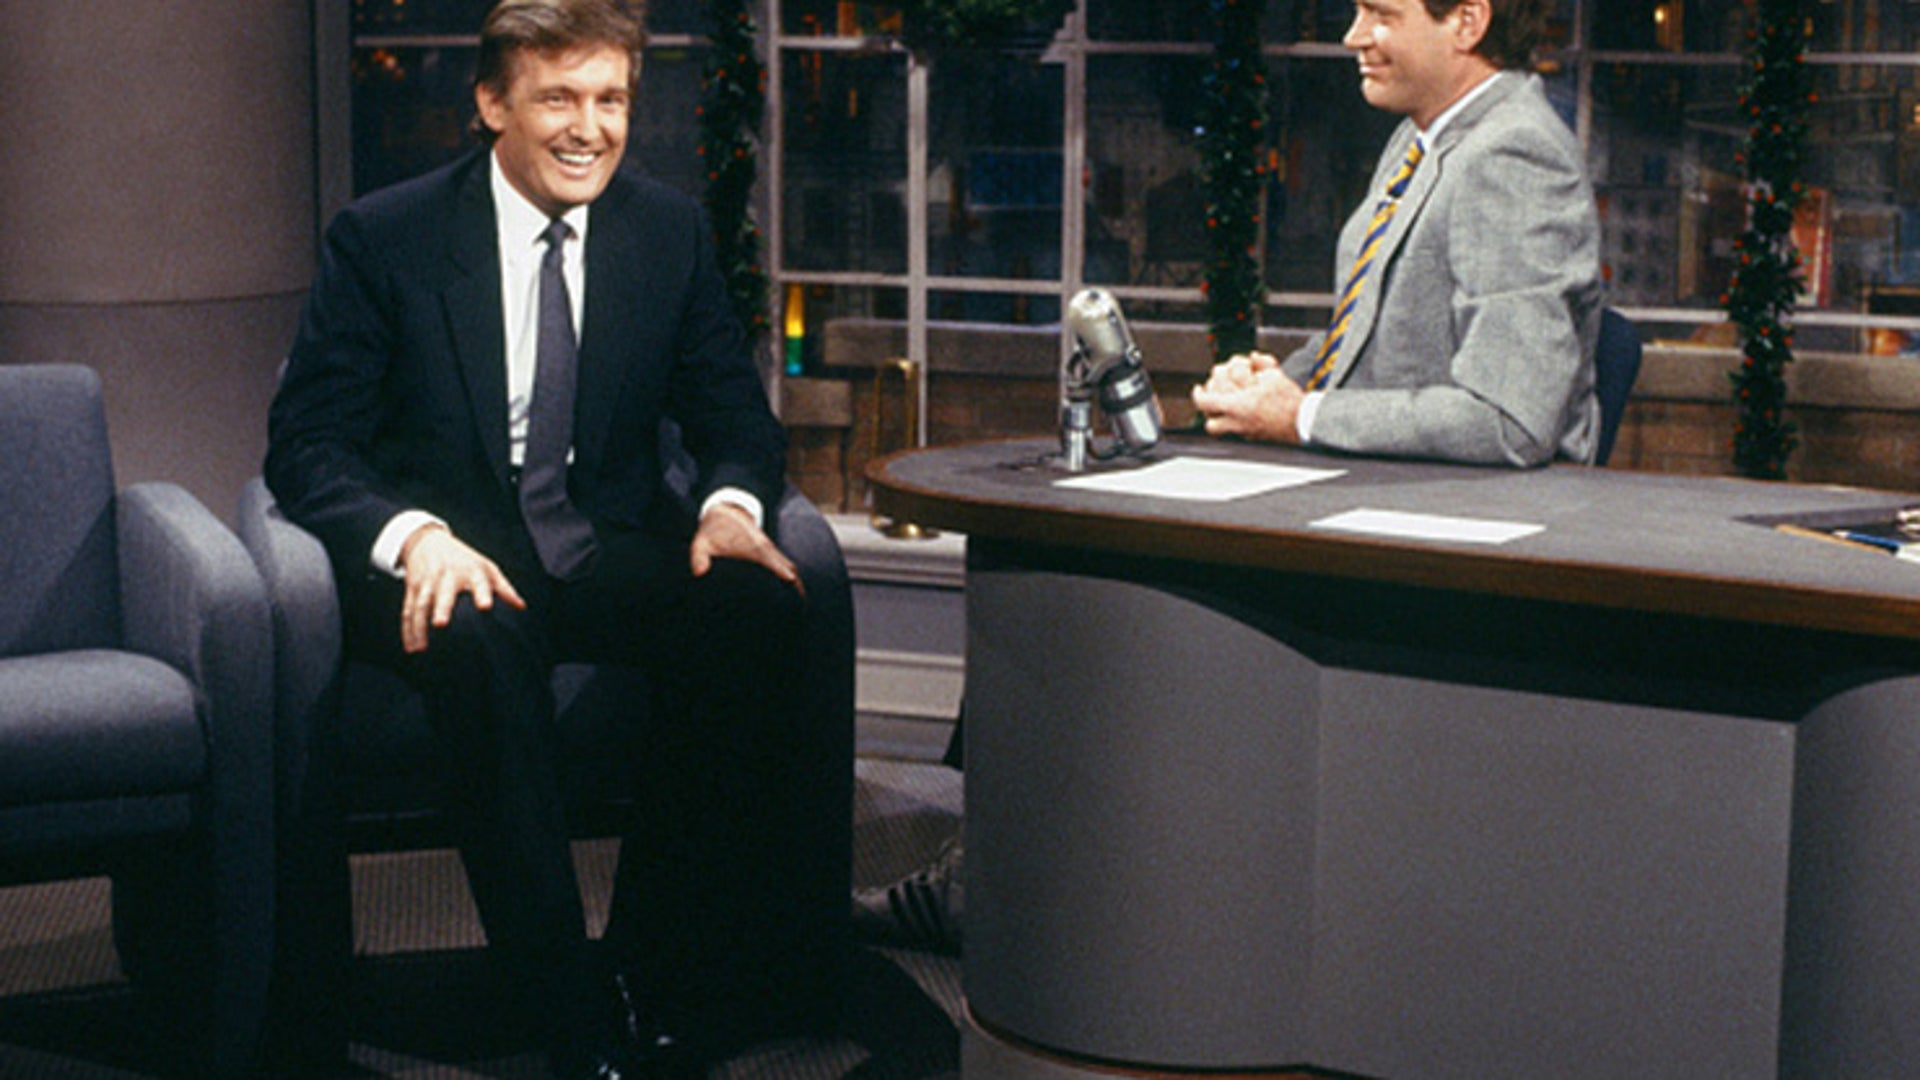 Donald Trump and David Letterman, Late Night with David Letterman